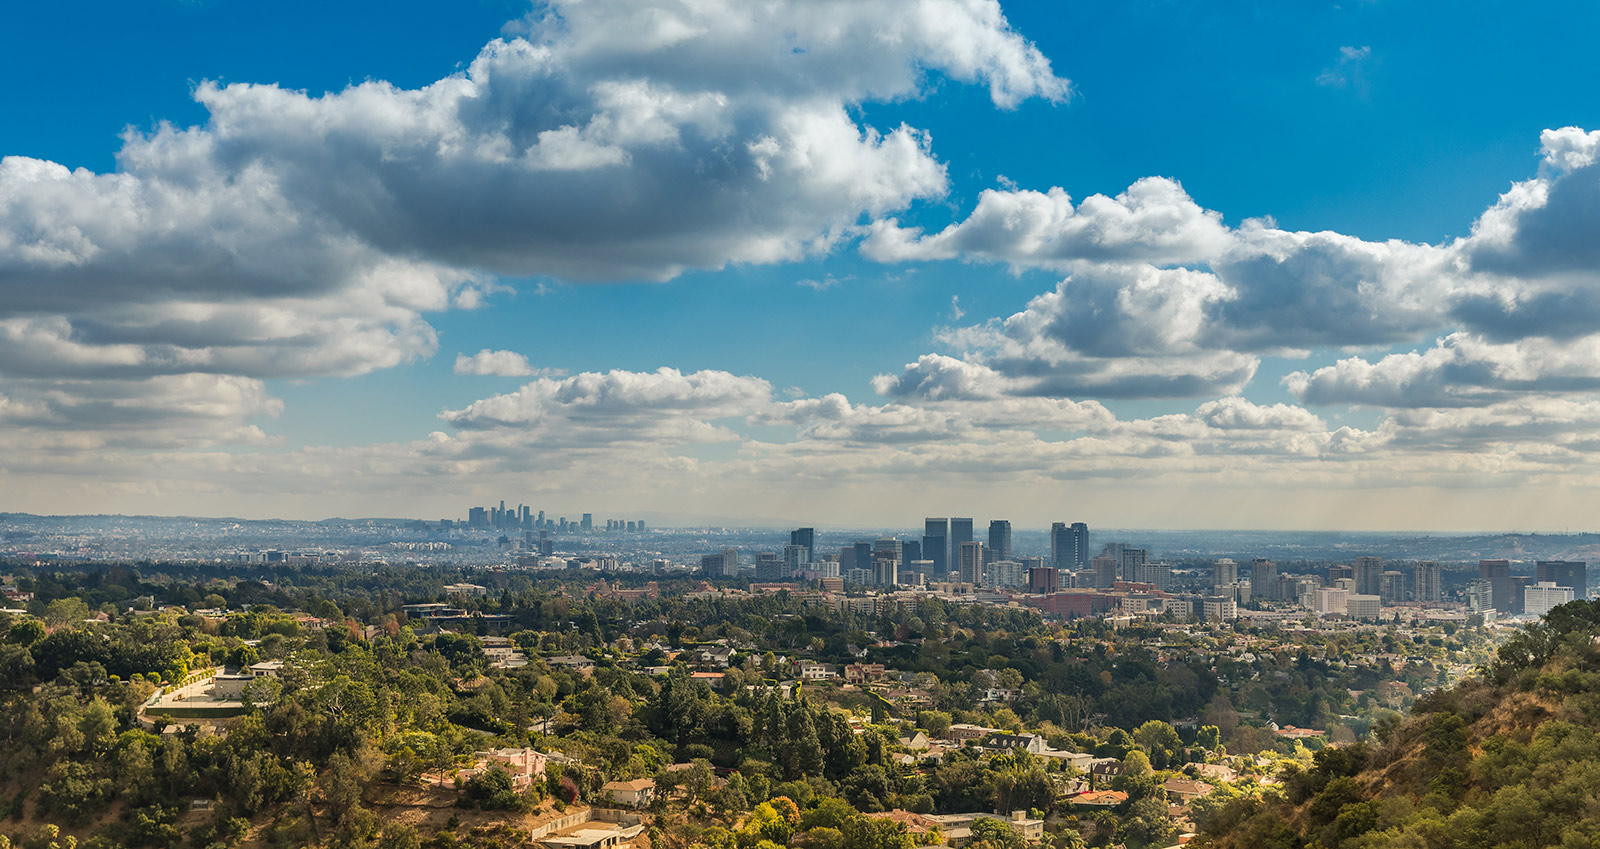 Aerial view of Los Angeles as seen from the Getty Center, looking east.